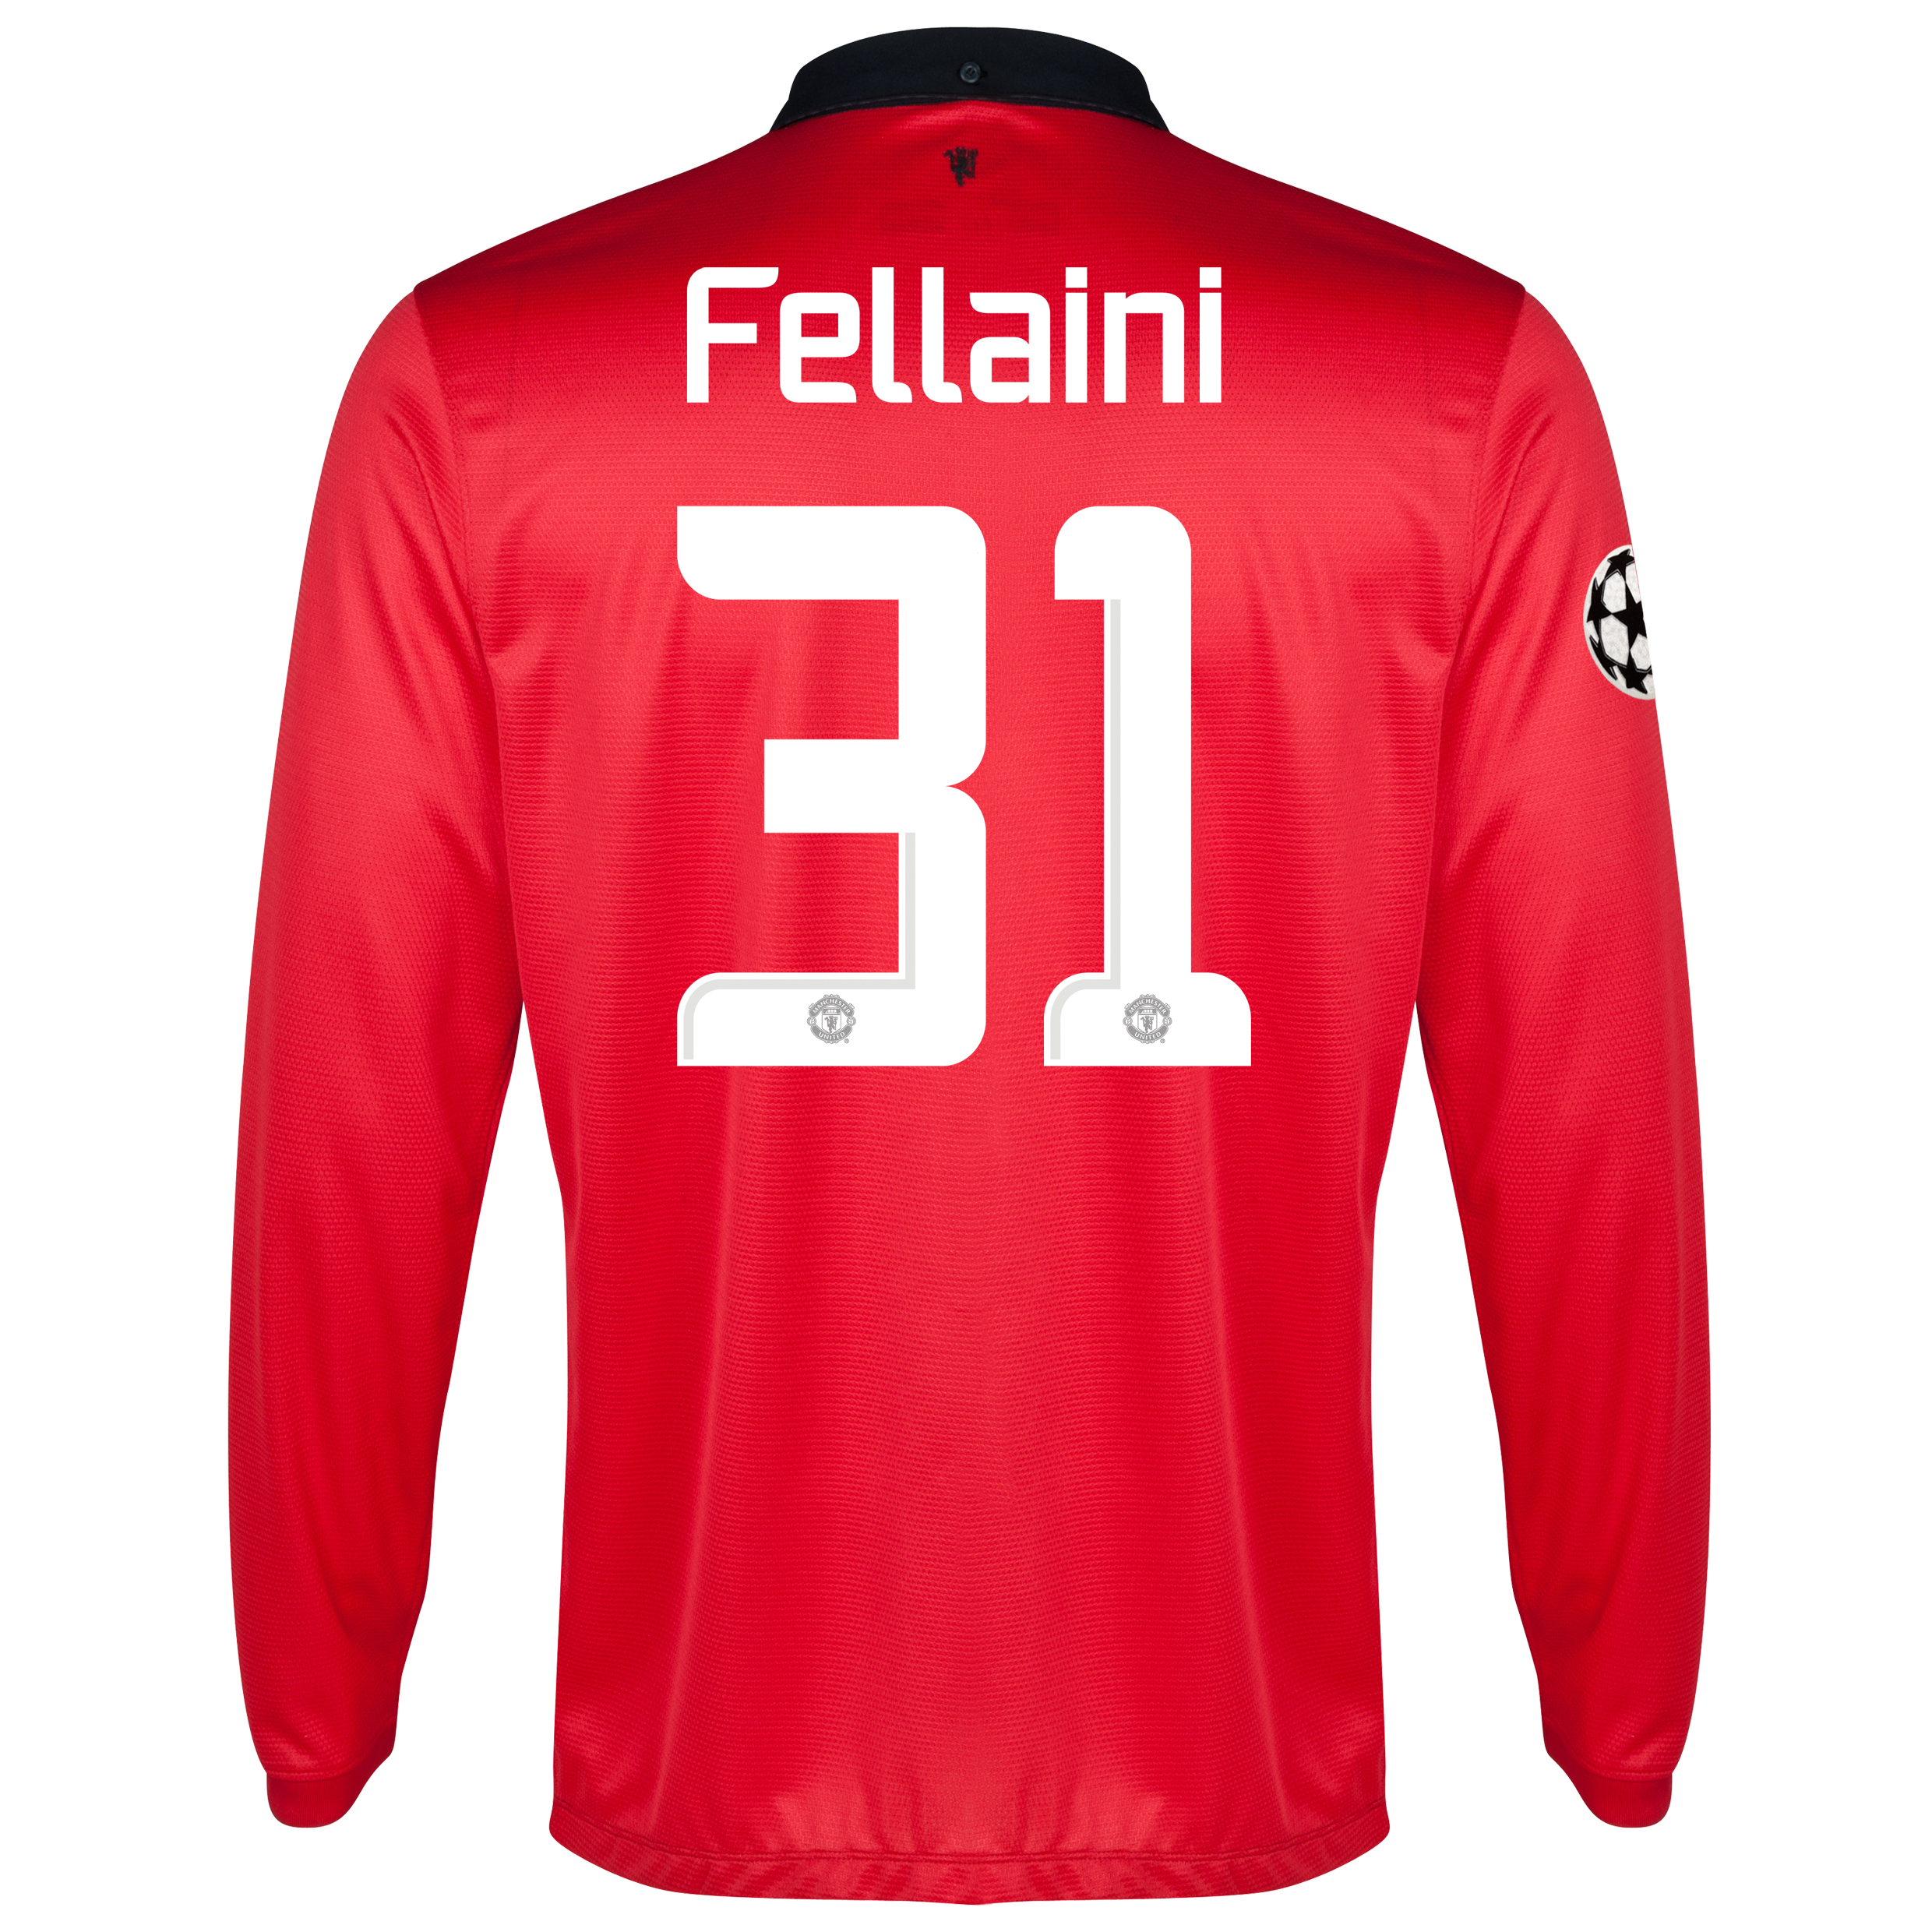 Manchester United UEFA Champions League Home Shirt 2013/14 - Long Sleeved with Fellaini 31 printing